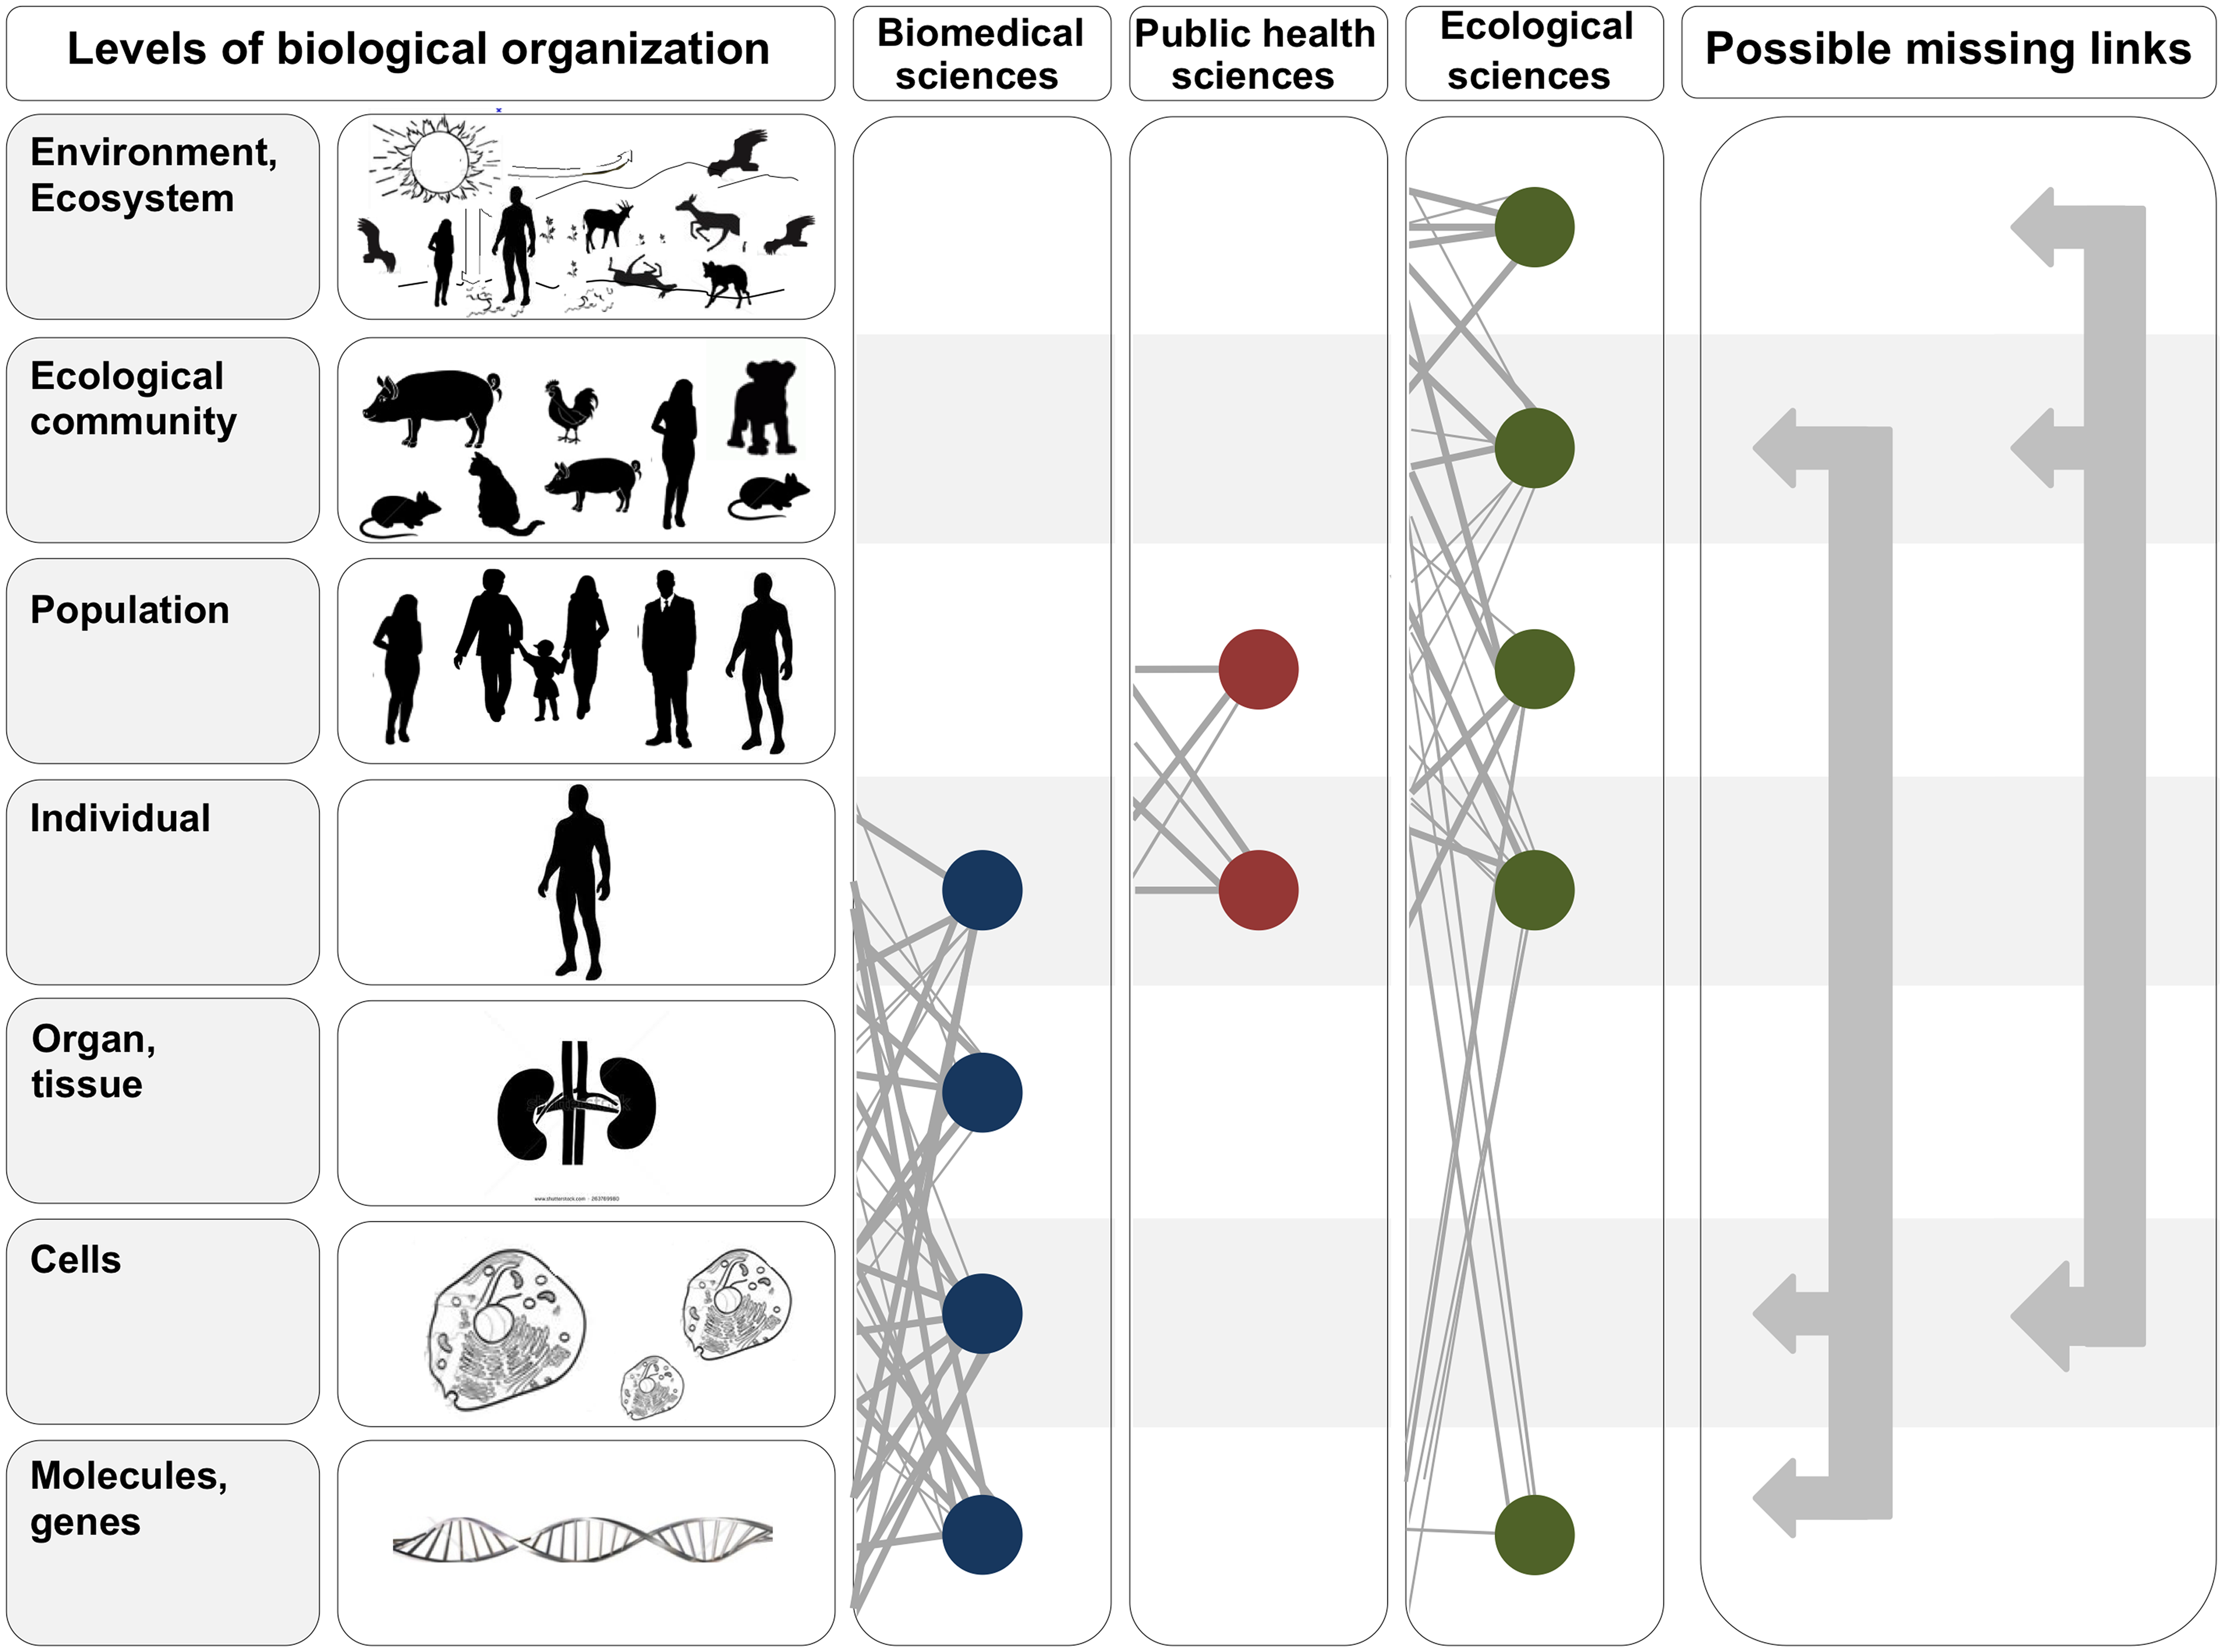 In the two leftmost panels, we depict the hierarchy of biological organization, from molecules and genes to ecosystems.